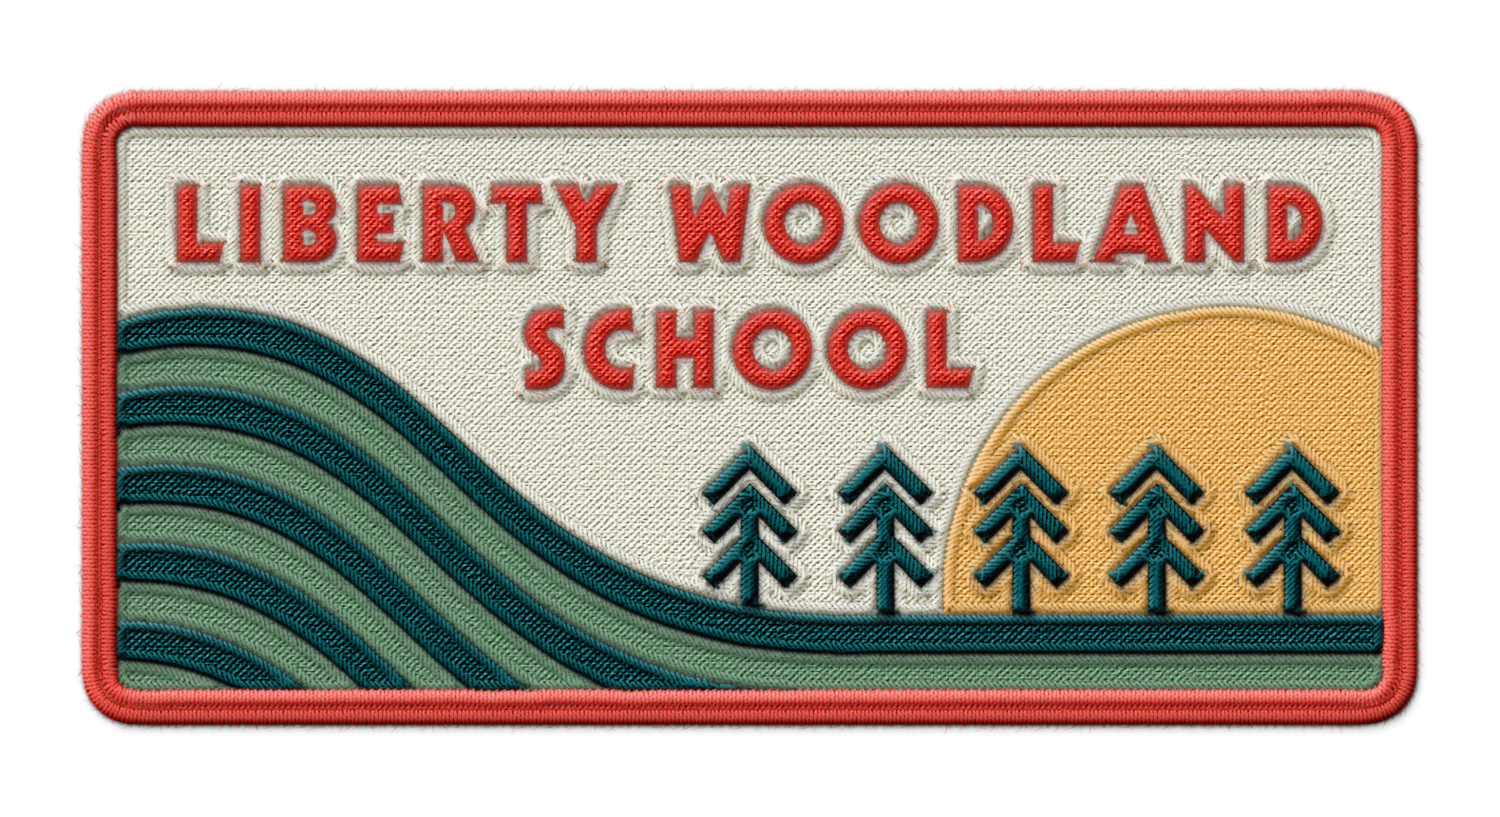 Liberty Woodland School